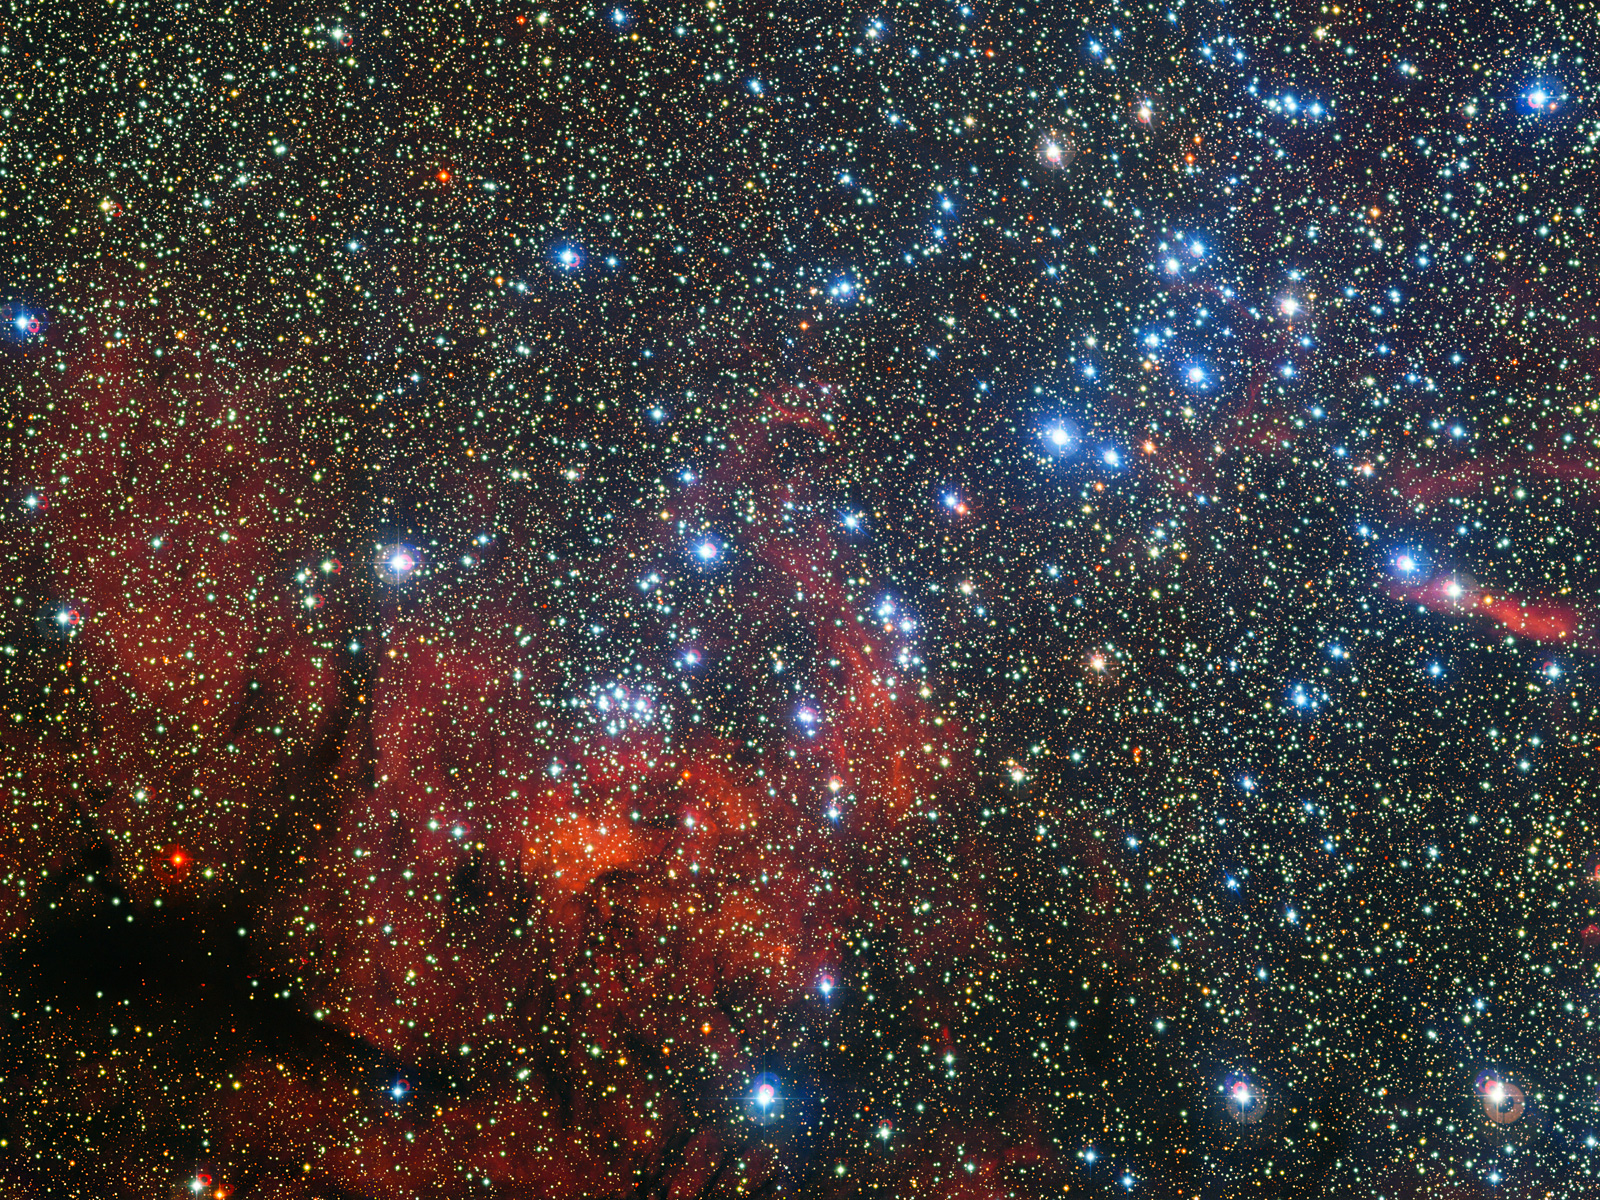 Colorful Star Cluster | Space Wallpaper